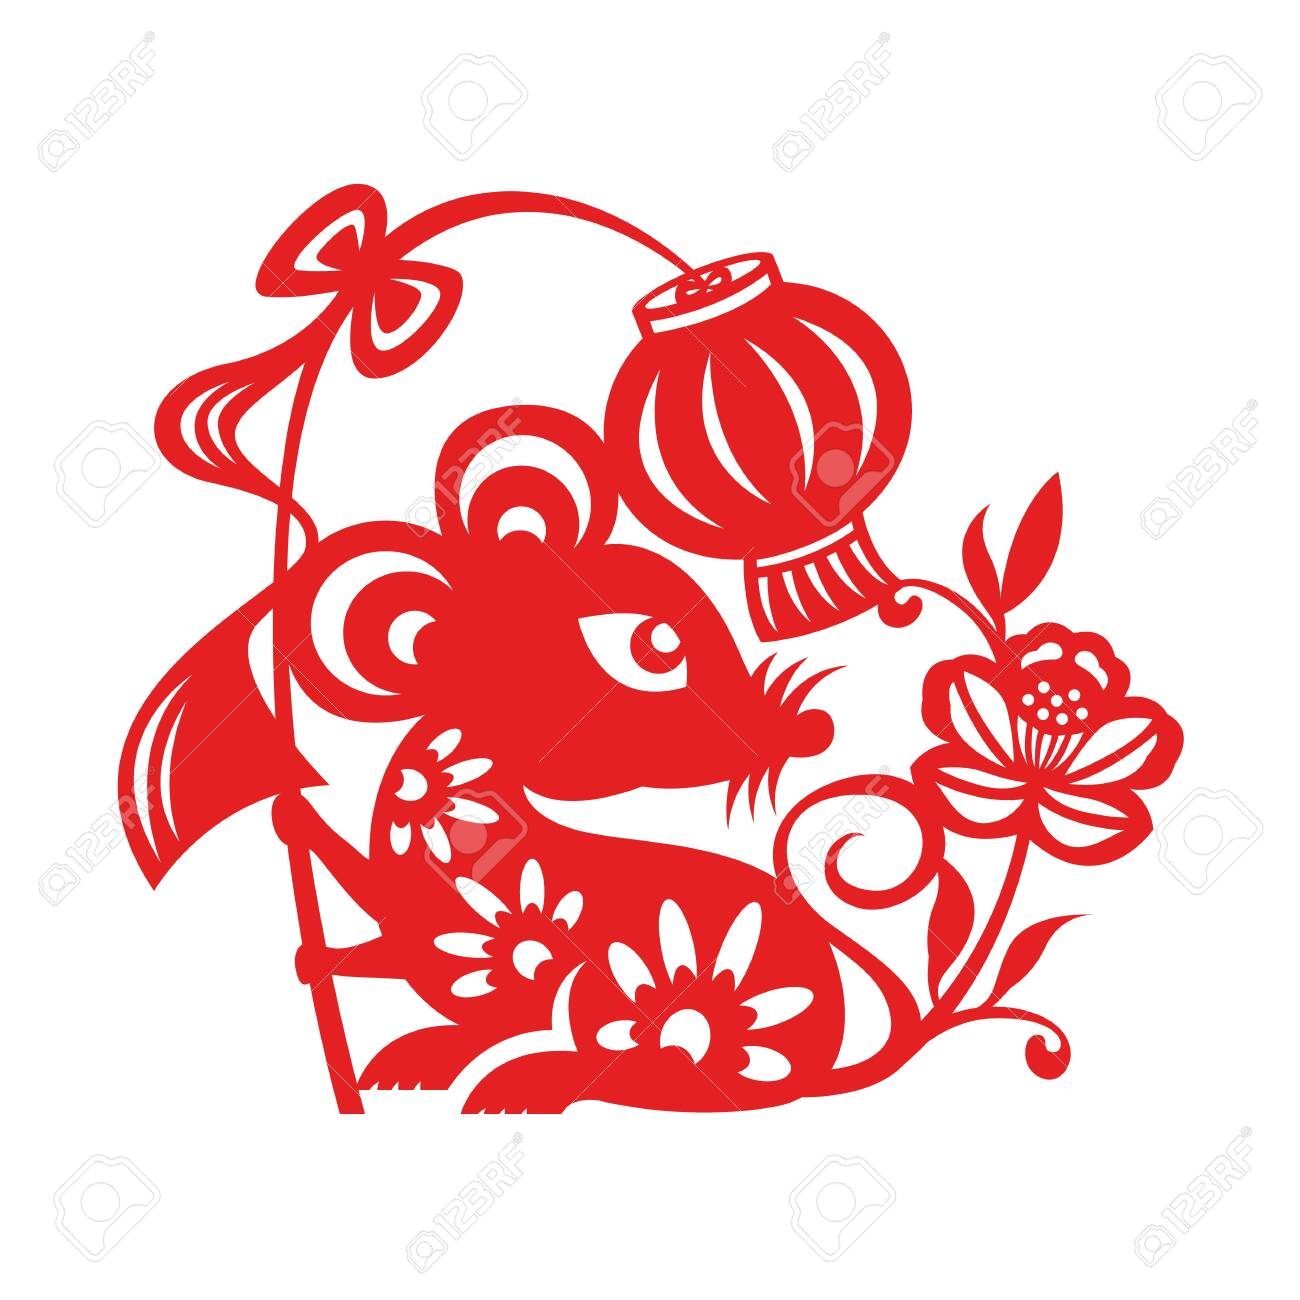 Red paper cut rat zodiac hold lantern sign and flower isolate on white background vector design - 126257989